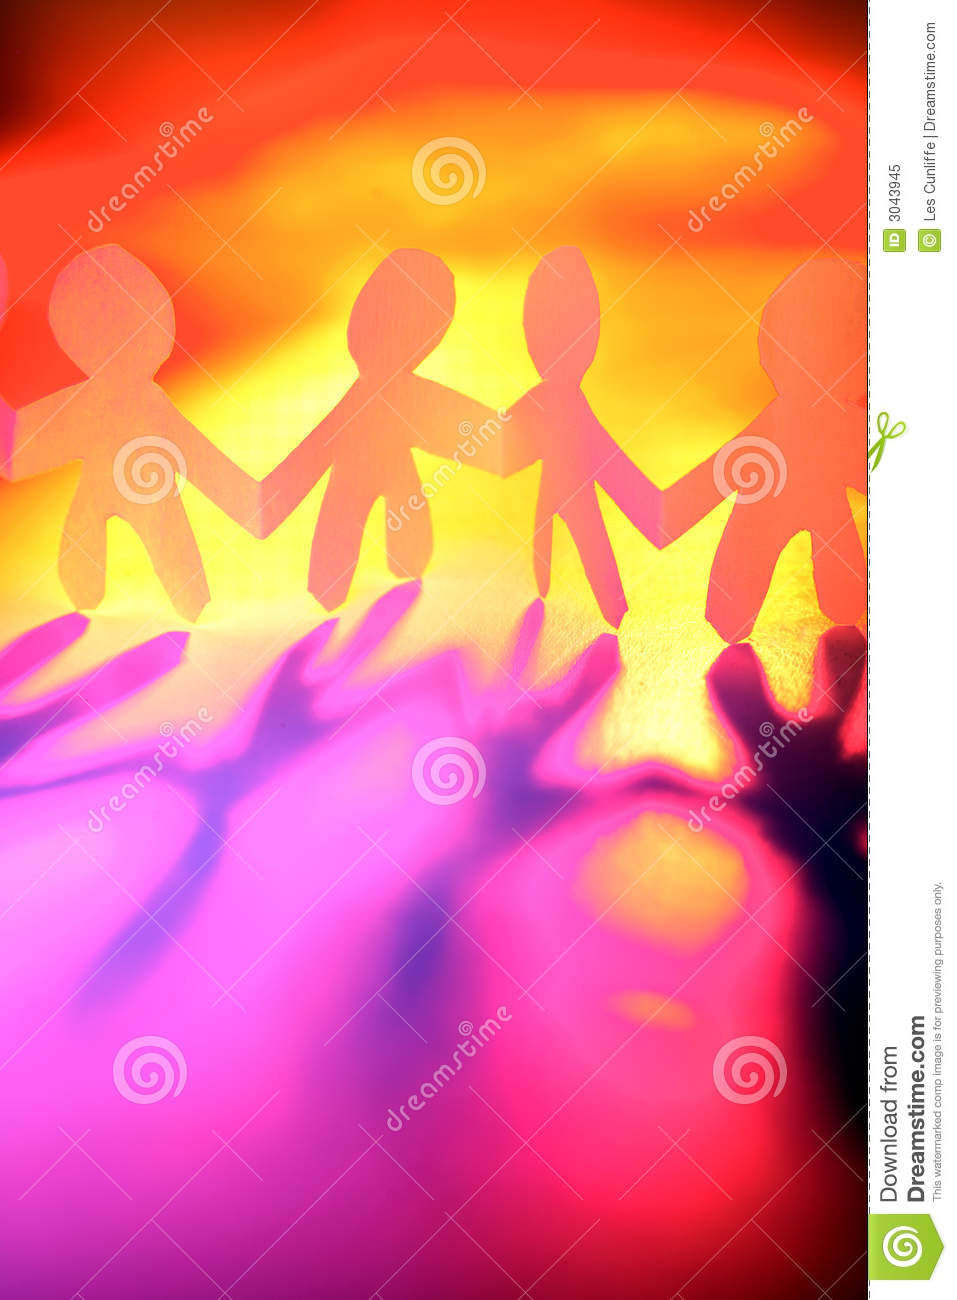 Line Of Four Paper Doll Cutout Figures Holding Hands With A Colorful